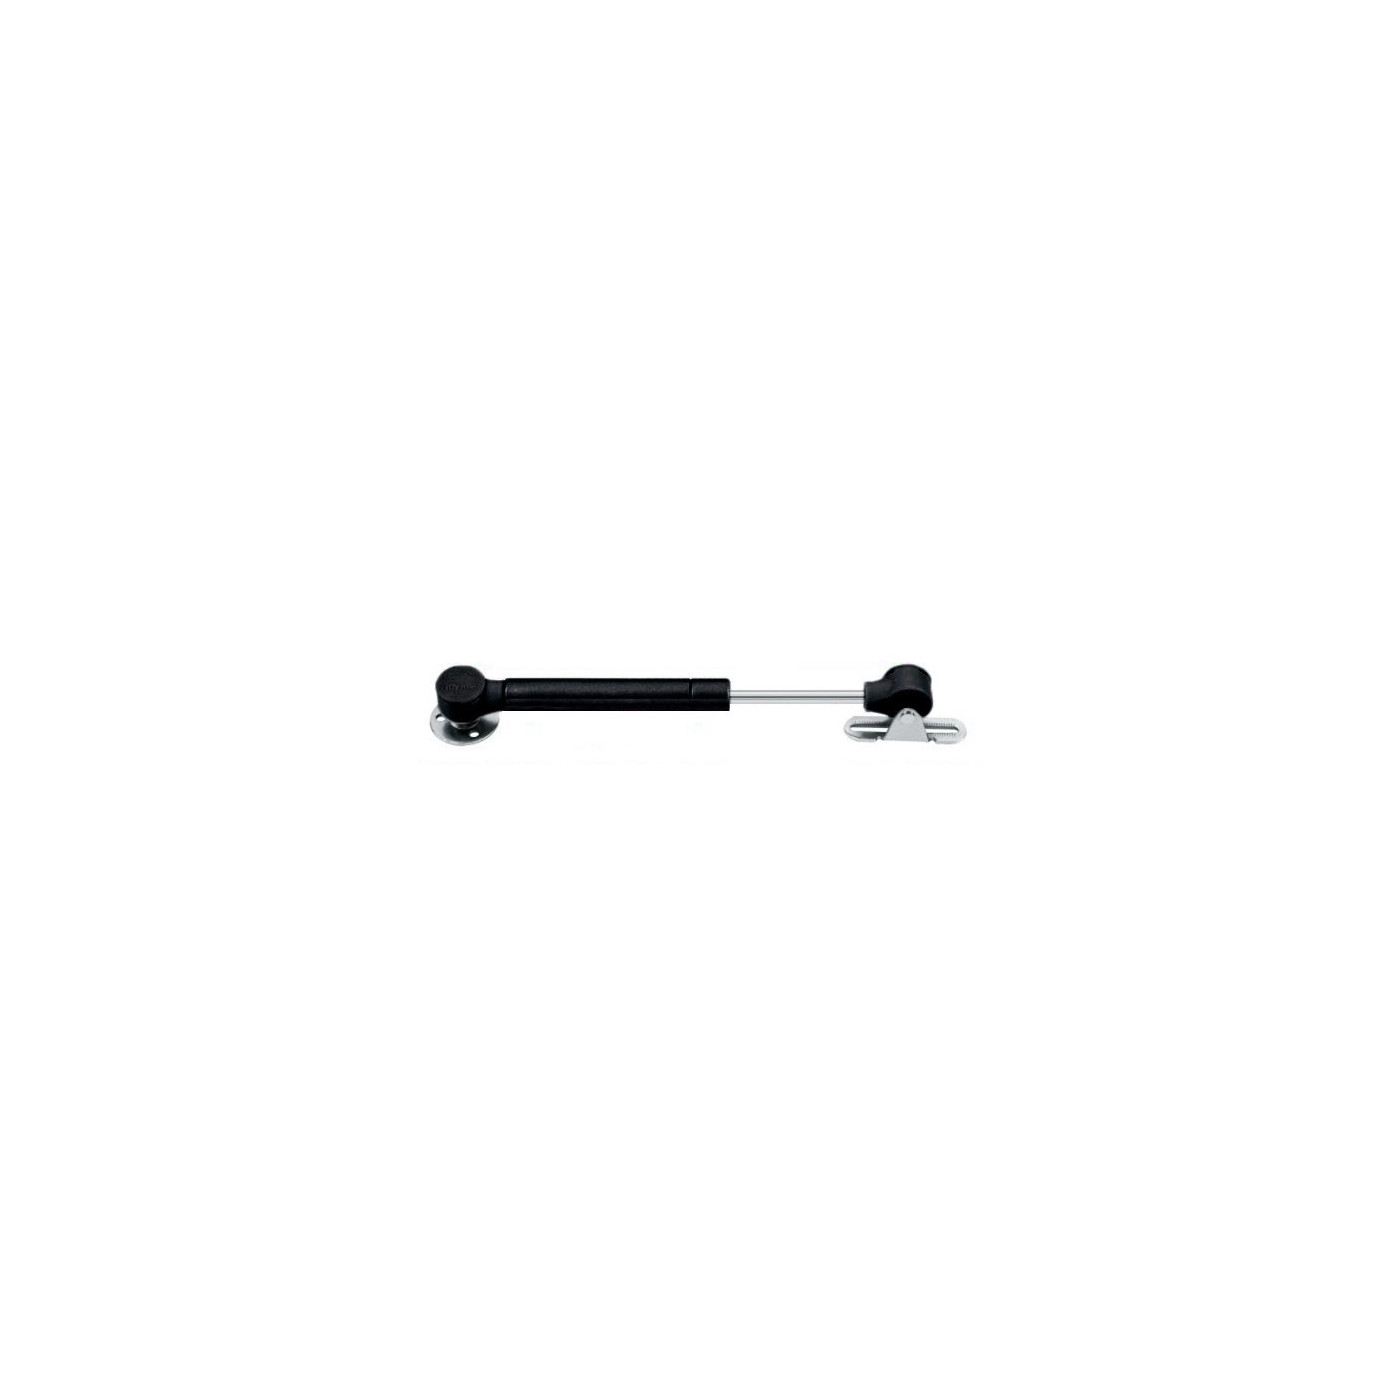 Universal gas spring with brackets (50N/5kg, 172 mm, black)